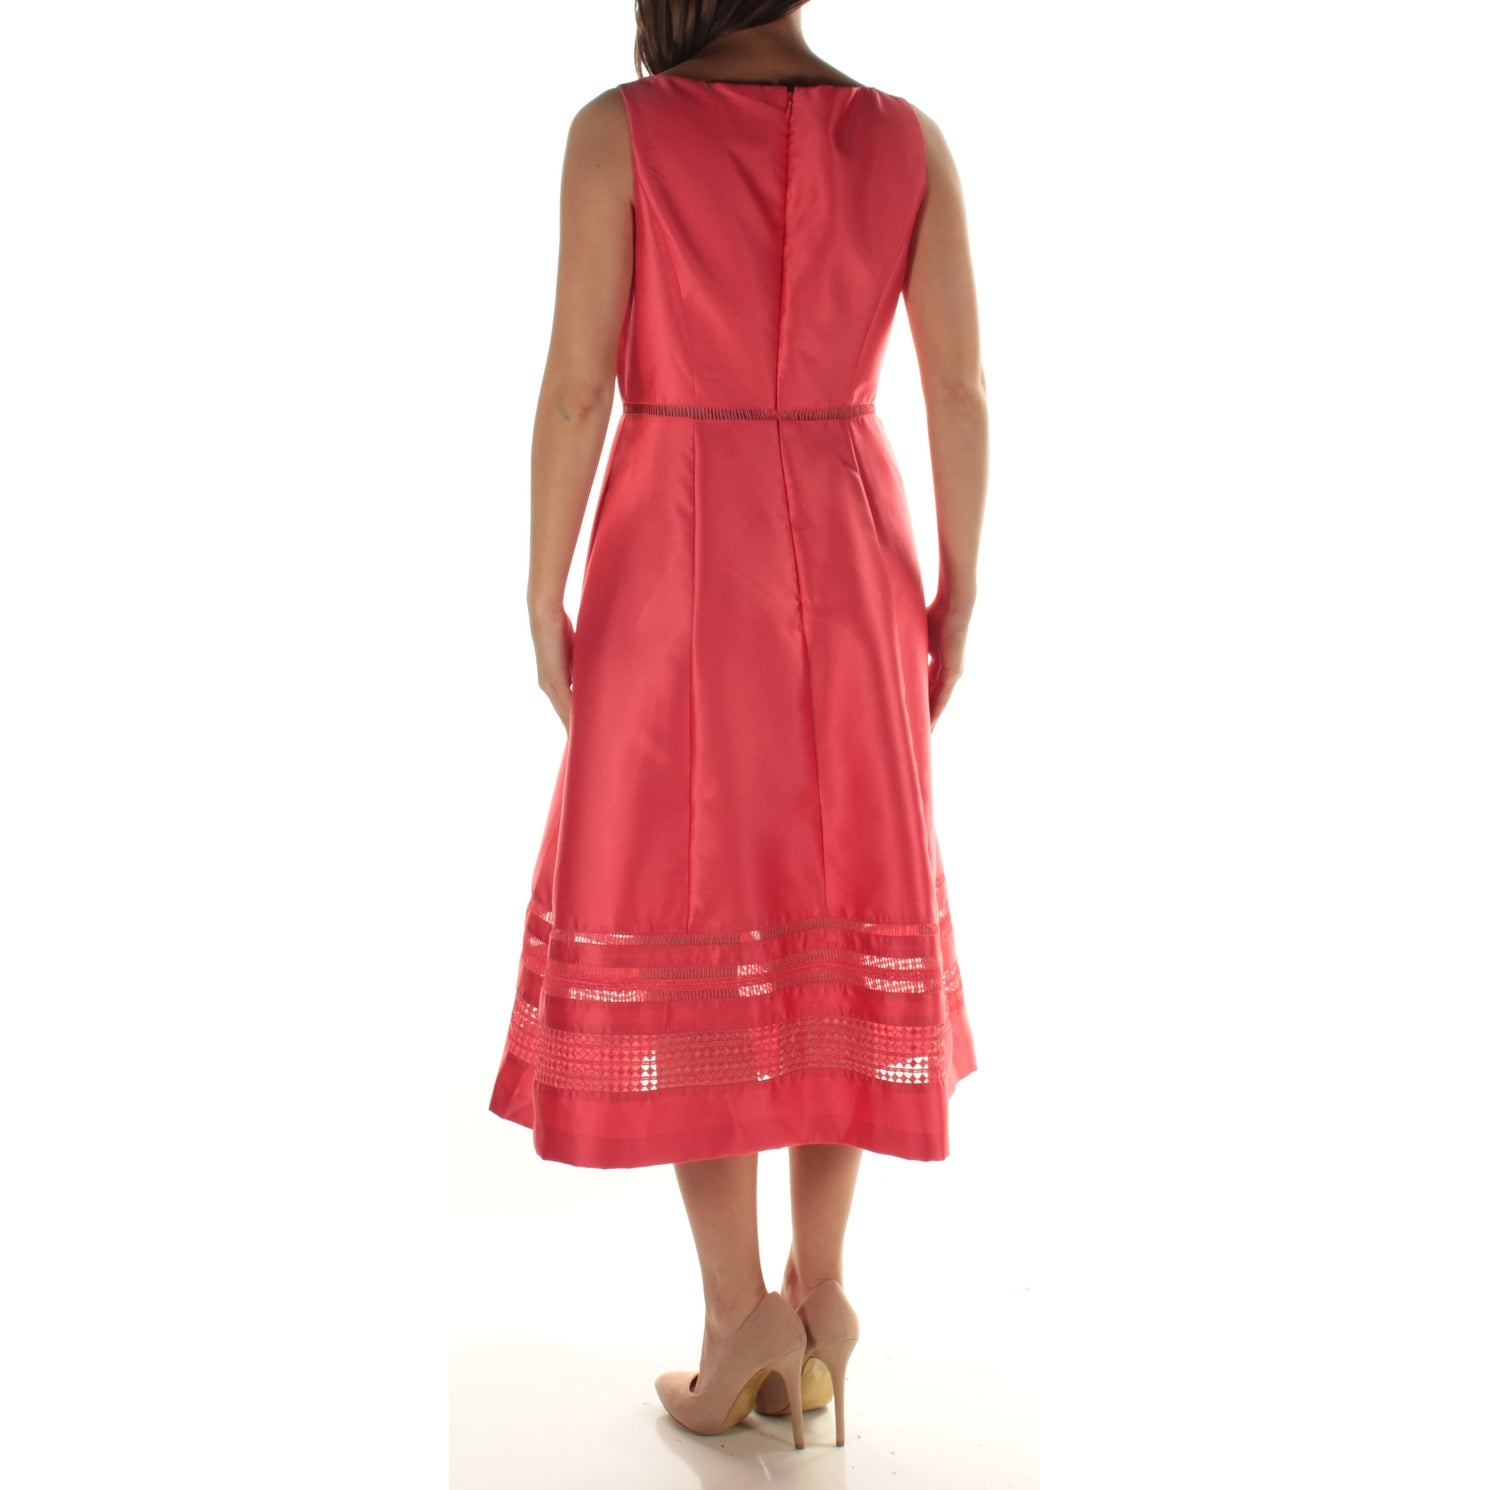 23f8d66909197 Shop ADRIANNA PAPELL Womens Coral Lace Sleeveless V Neck Midi Fit + Flare Dress  Size  6 - Free Shipping On Orders Over  45 - Overstock - 21388629